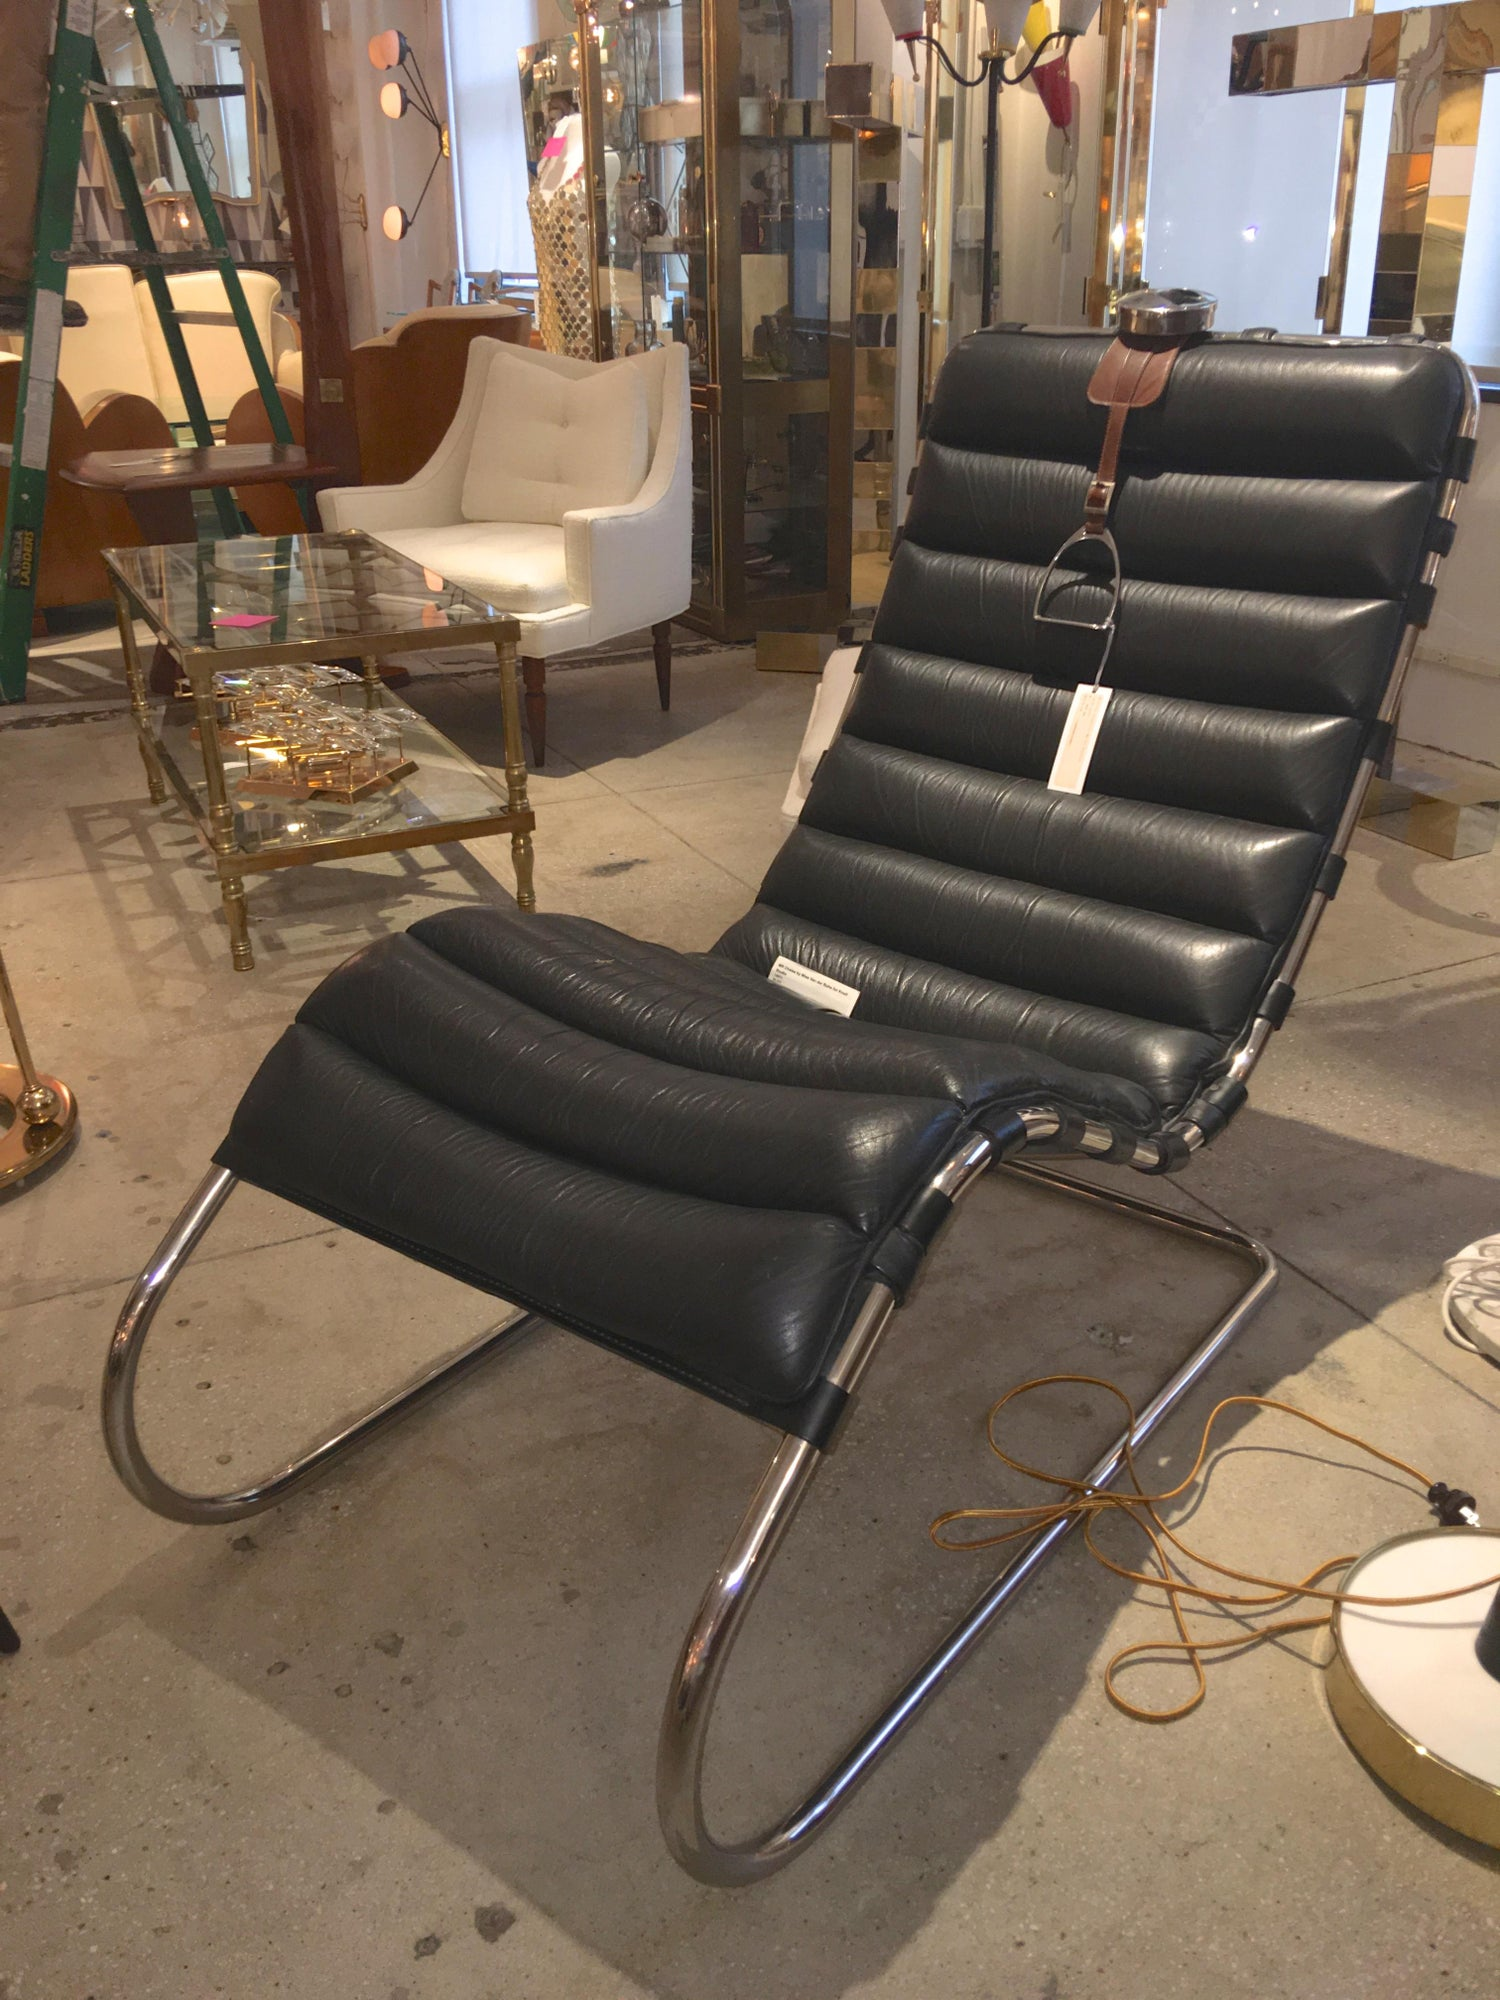 Mr Chaise By Mies Van Der Rohe For Knoll Studio For Sale At 1stdibs